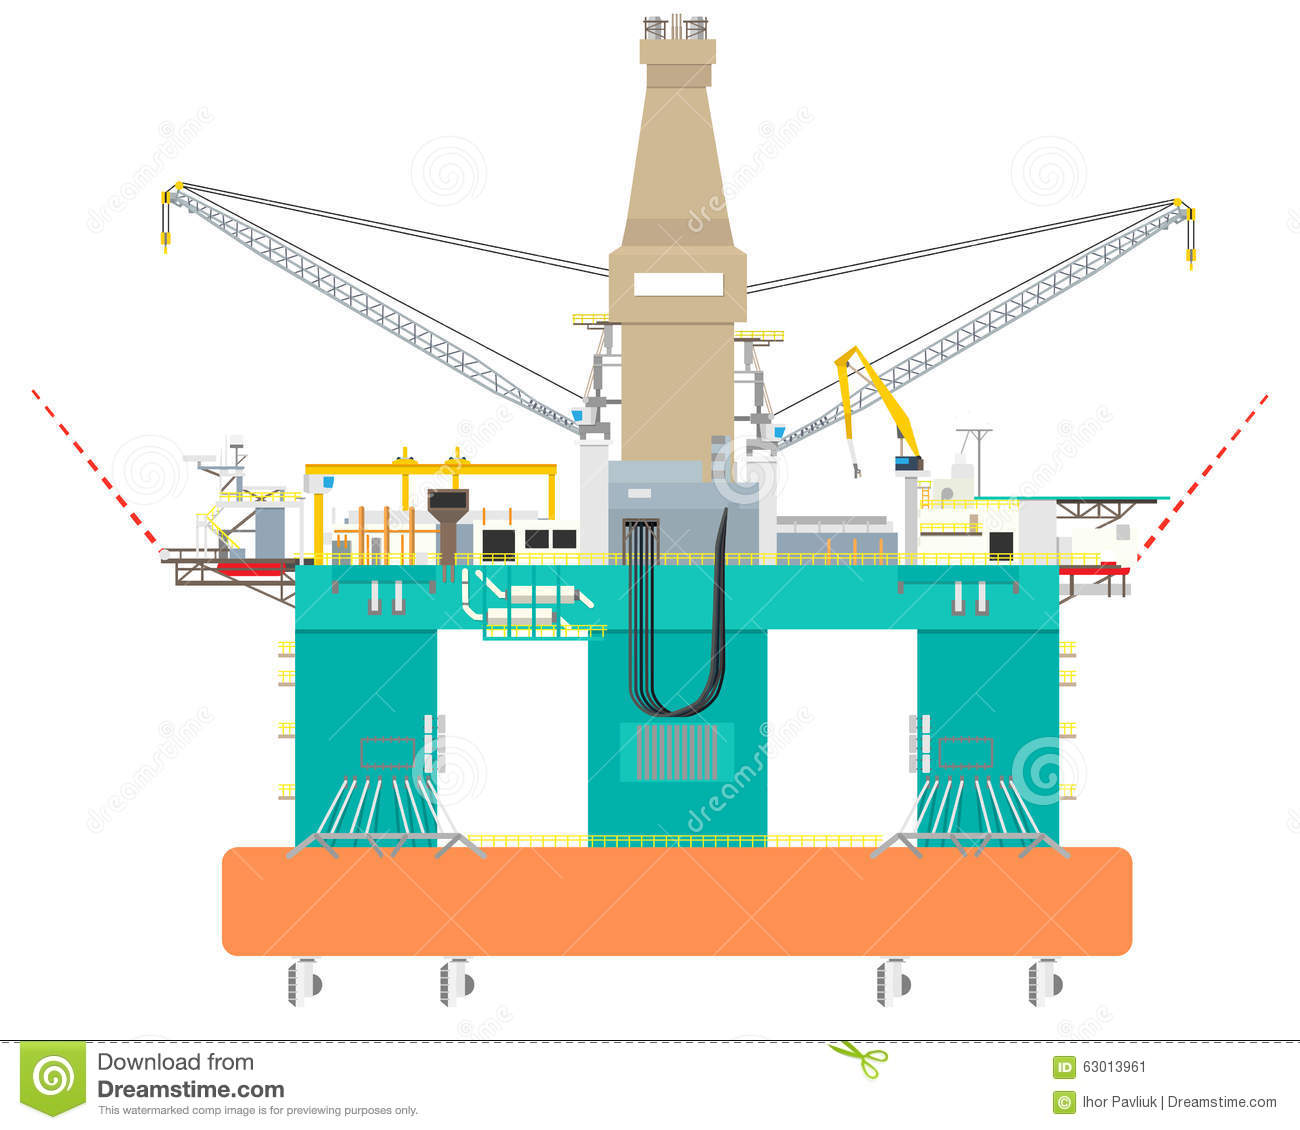 z rig diagram frog external anatomy offshore oil construction radio wiring